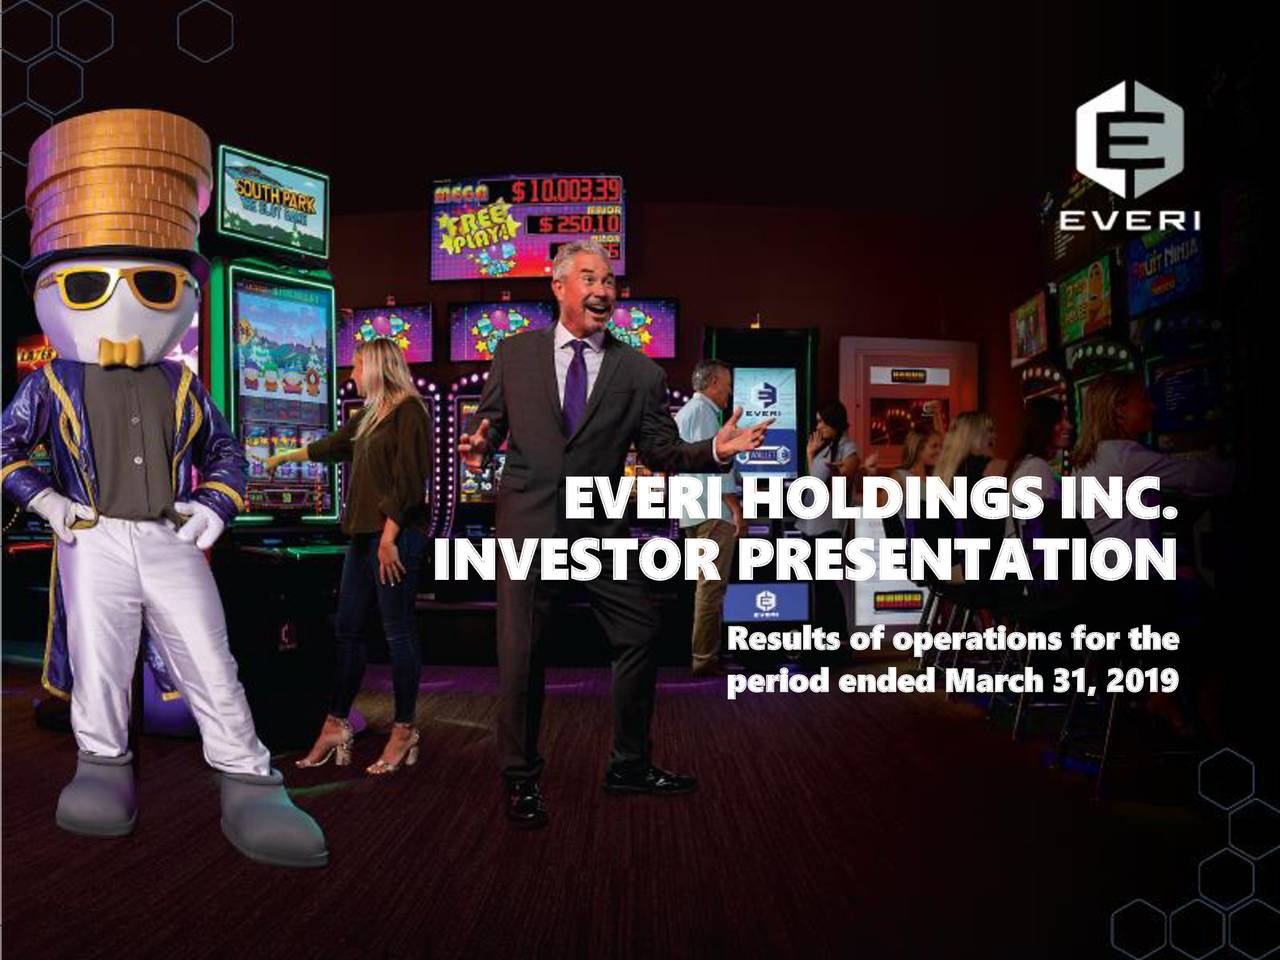 Everi Holdings (EVRI) Presents At Gaming, Hospitality & Leisure Conference 2019 - Slideshow